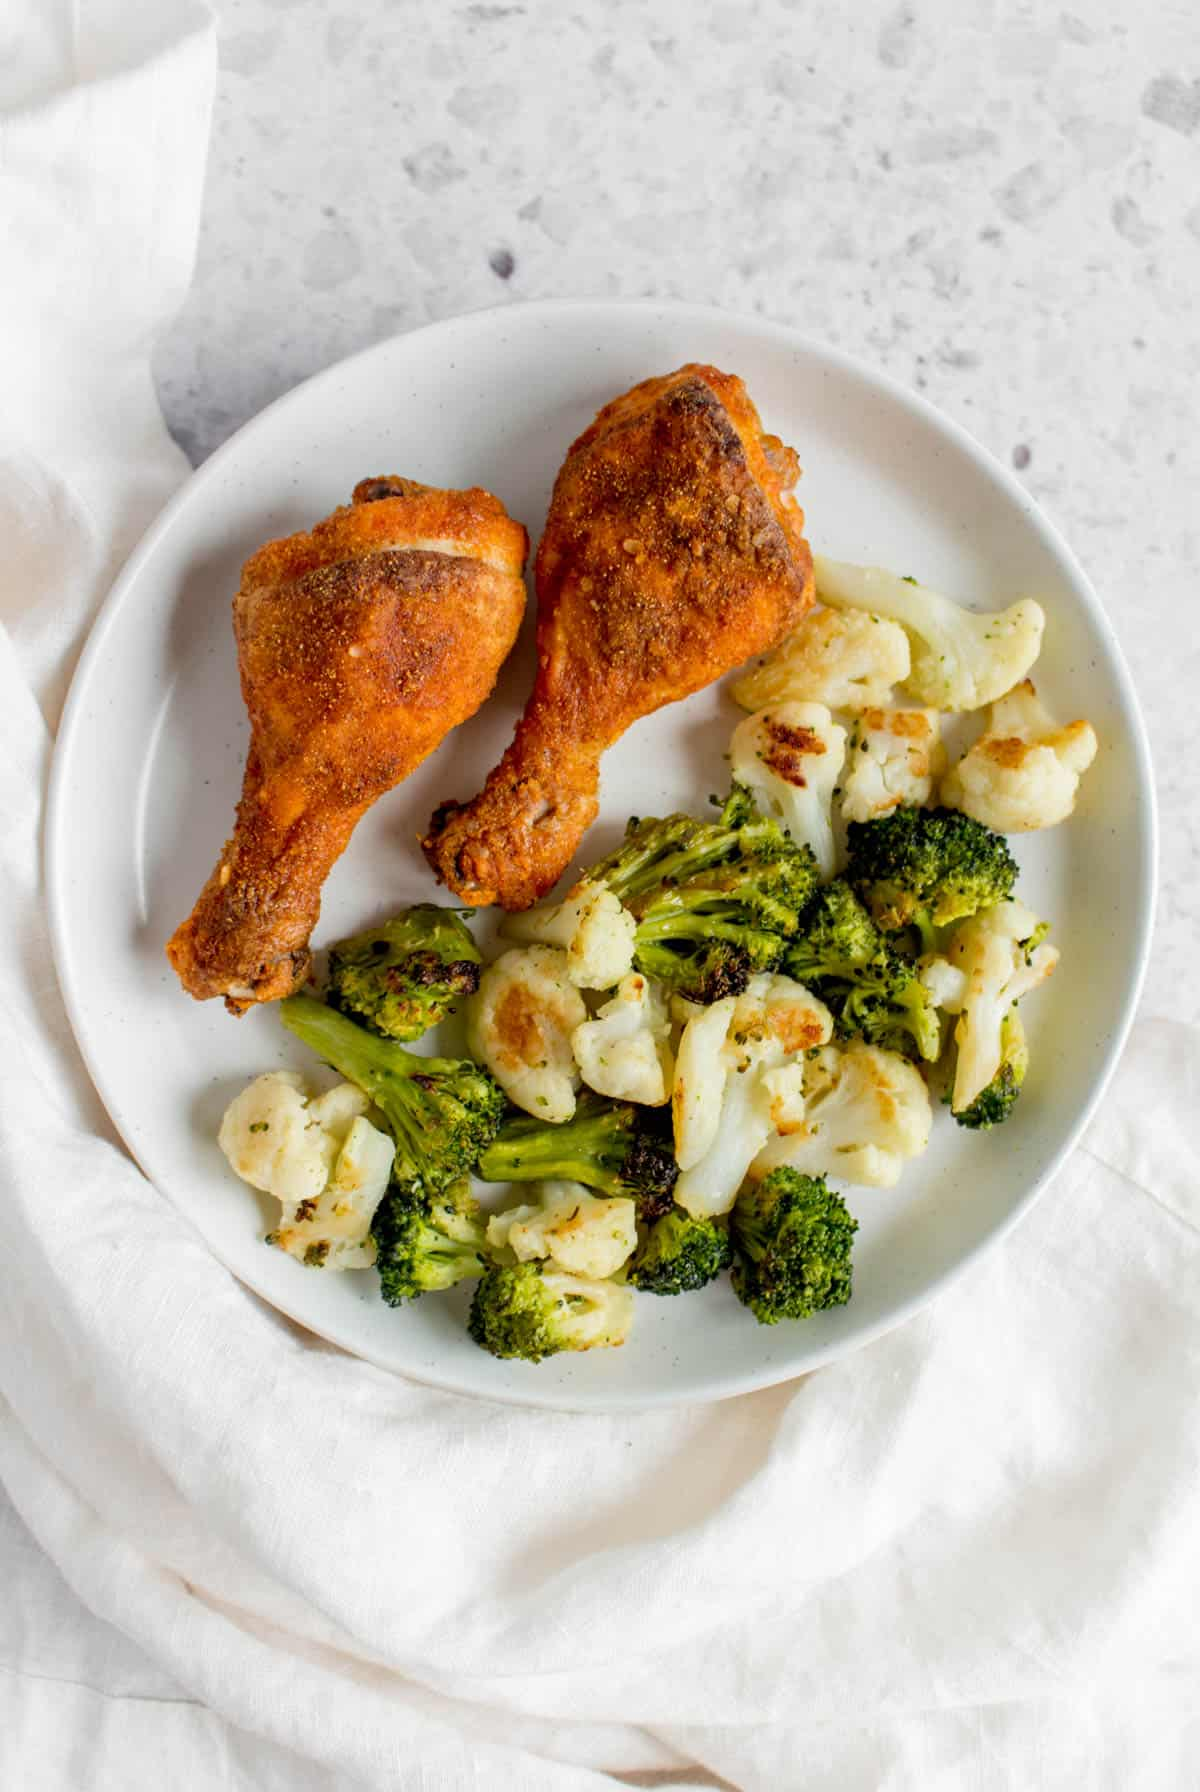 two crispy baked drumsticks on a white plate with broccoli and cauliflower